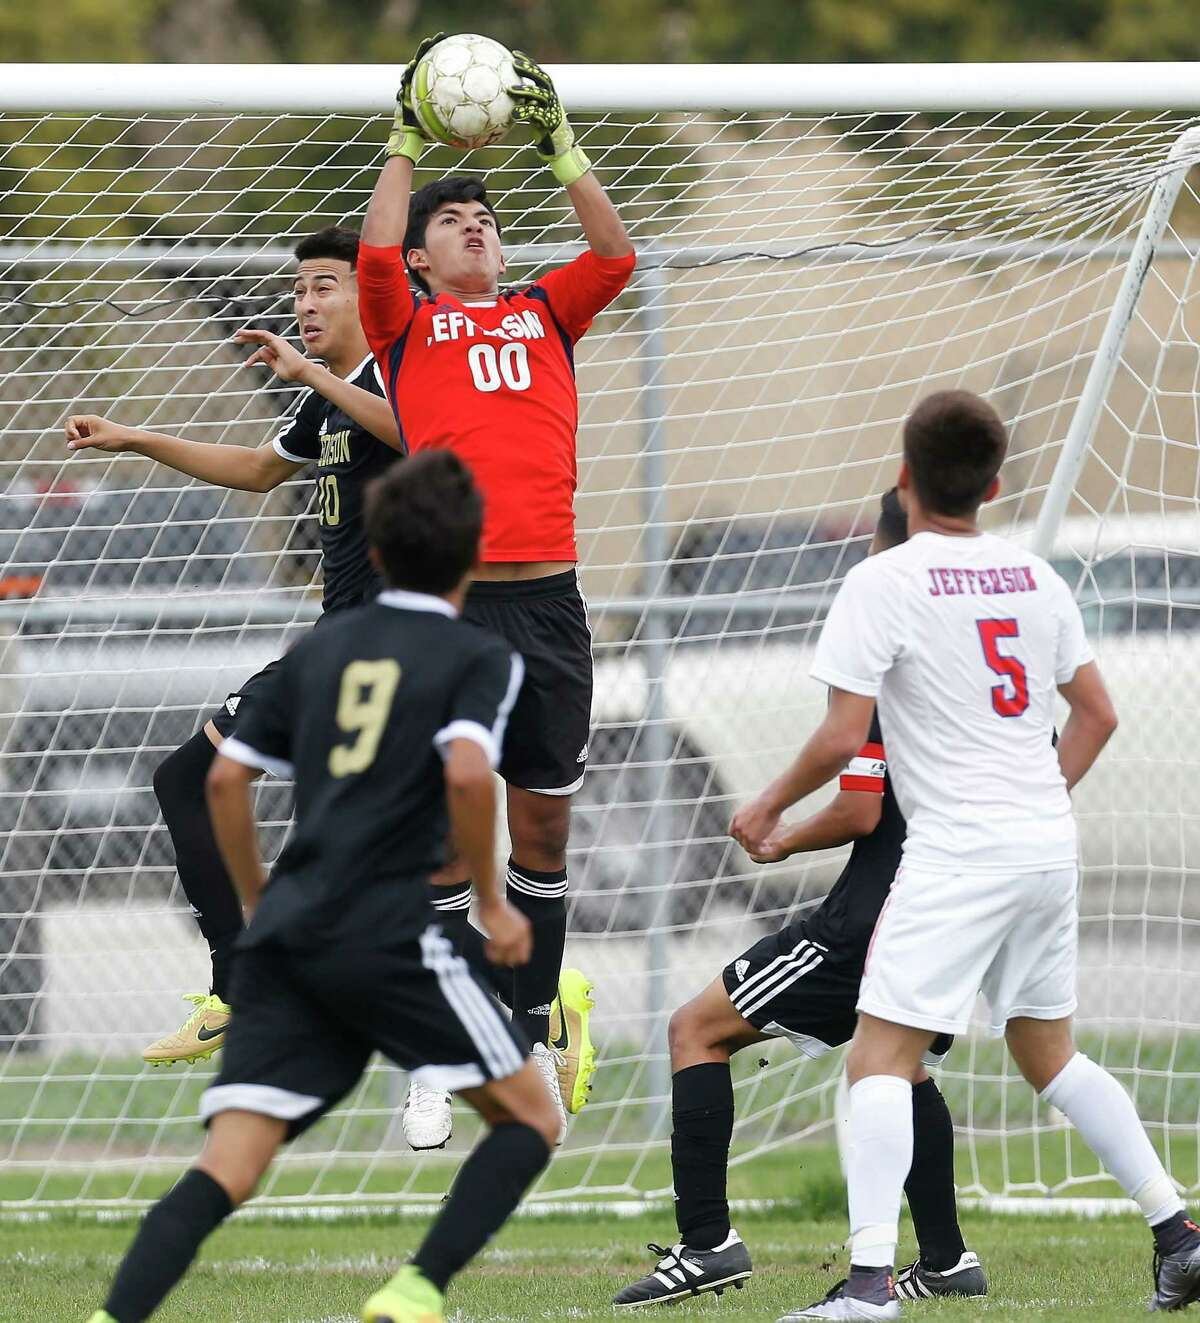 Jefferson goalkeeper Miguel Del Fierro makes a save against Edison's Livan Hernandez (20) in a boys soccer match to determine the District 28-5A championship title at SAISD Spring Sports Complex on Thursday, Mar. 17, 2016. Jefferson won the title but both teams will head into playoffs. The Mustangs defeated the Bears, 4-1. (Kin Man Hui/San Antonio Express-News)